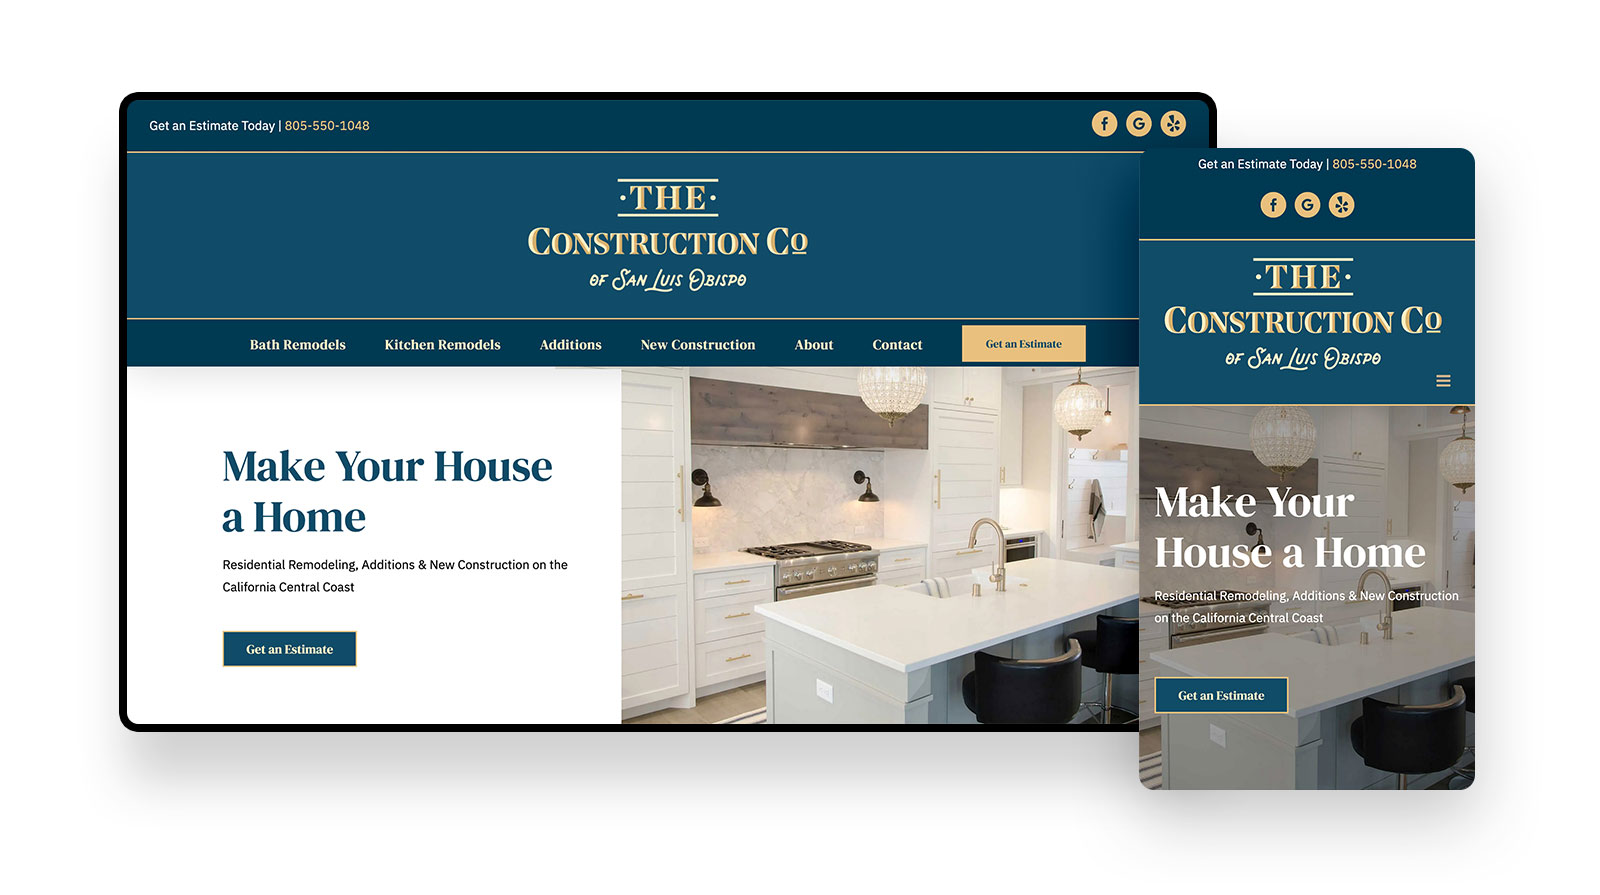 Website-Design-THE-Construction-Co-of-SLO